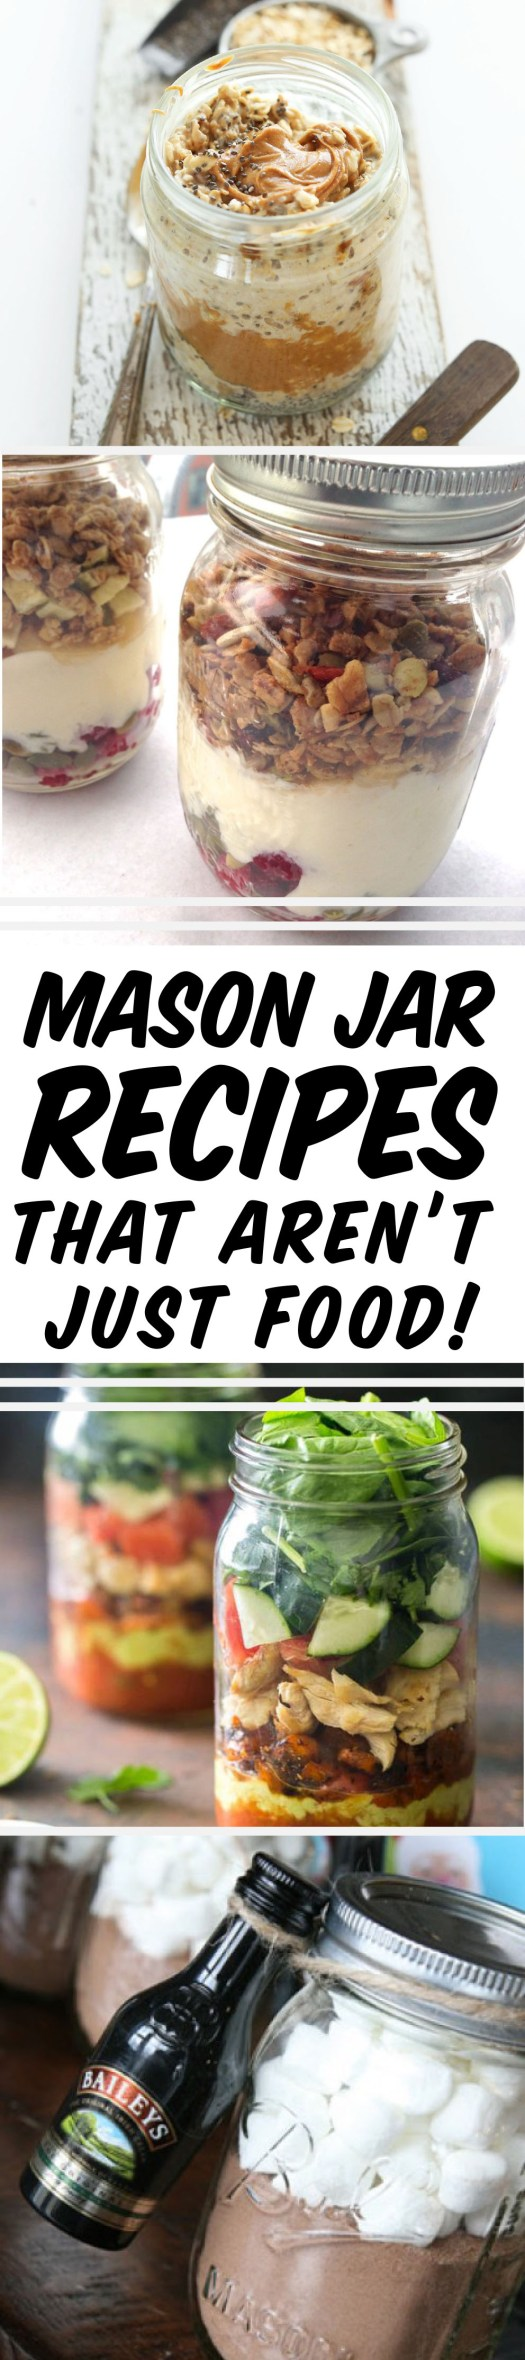 Mason jar recipes you need in your life!